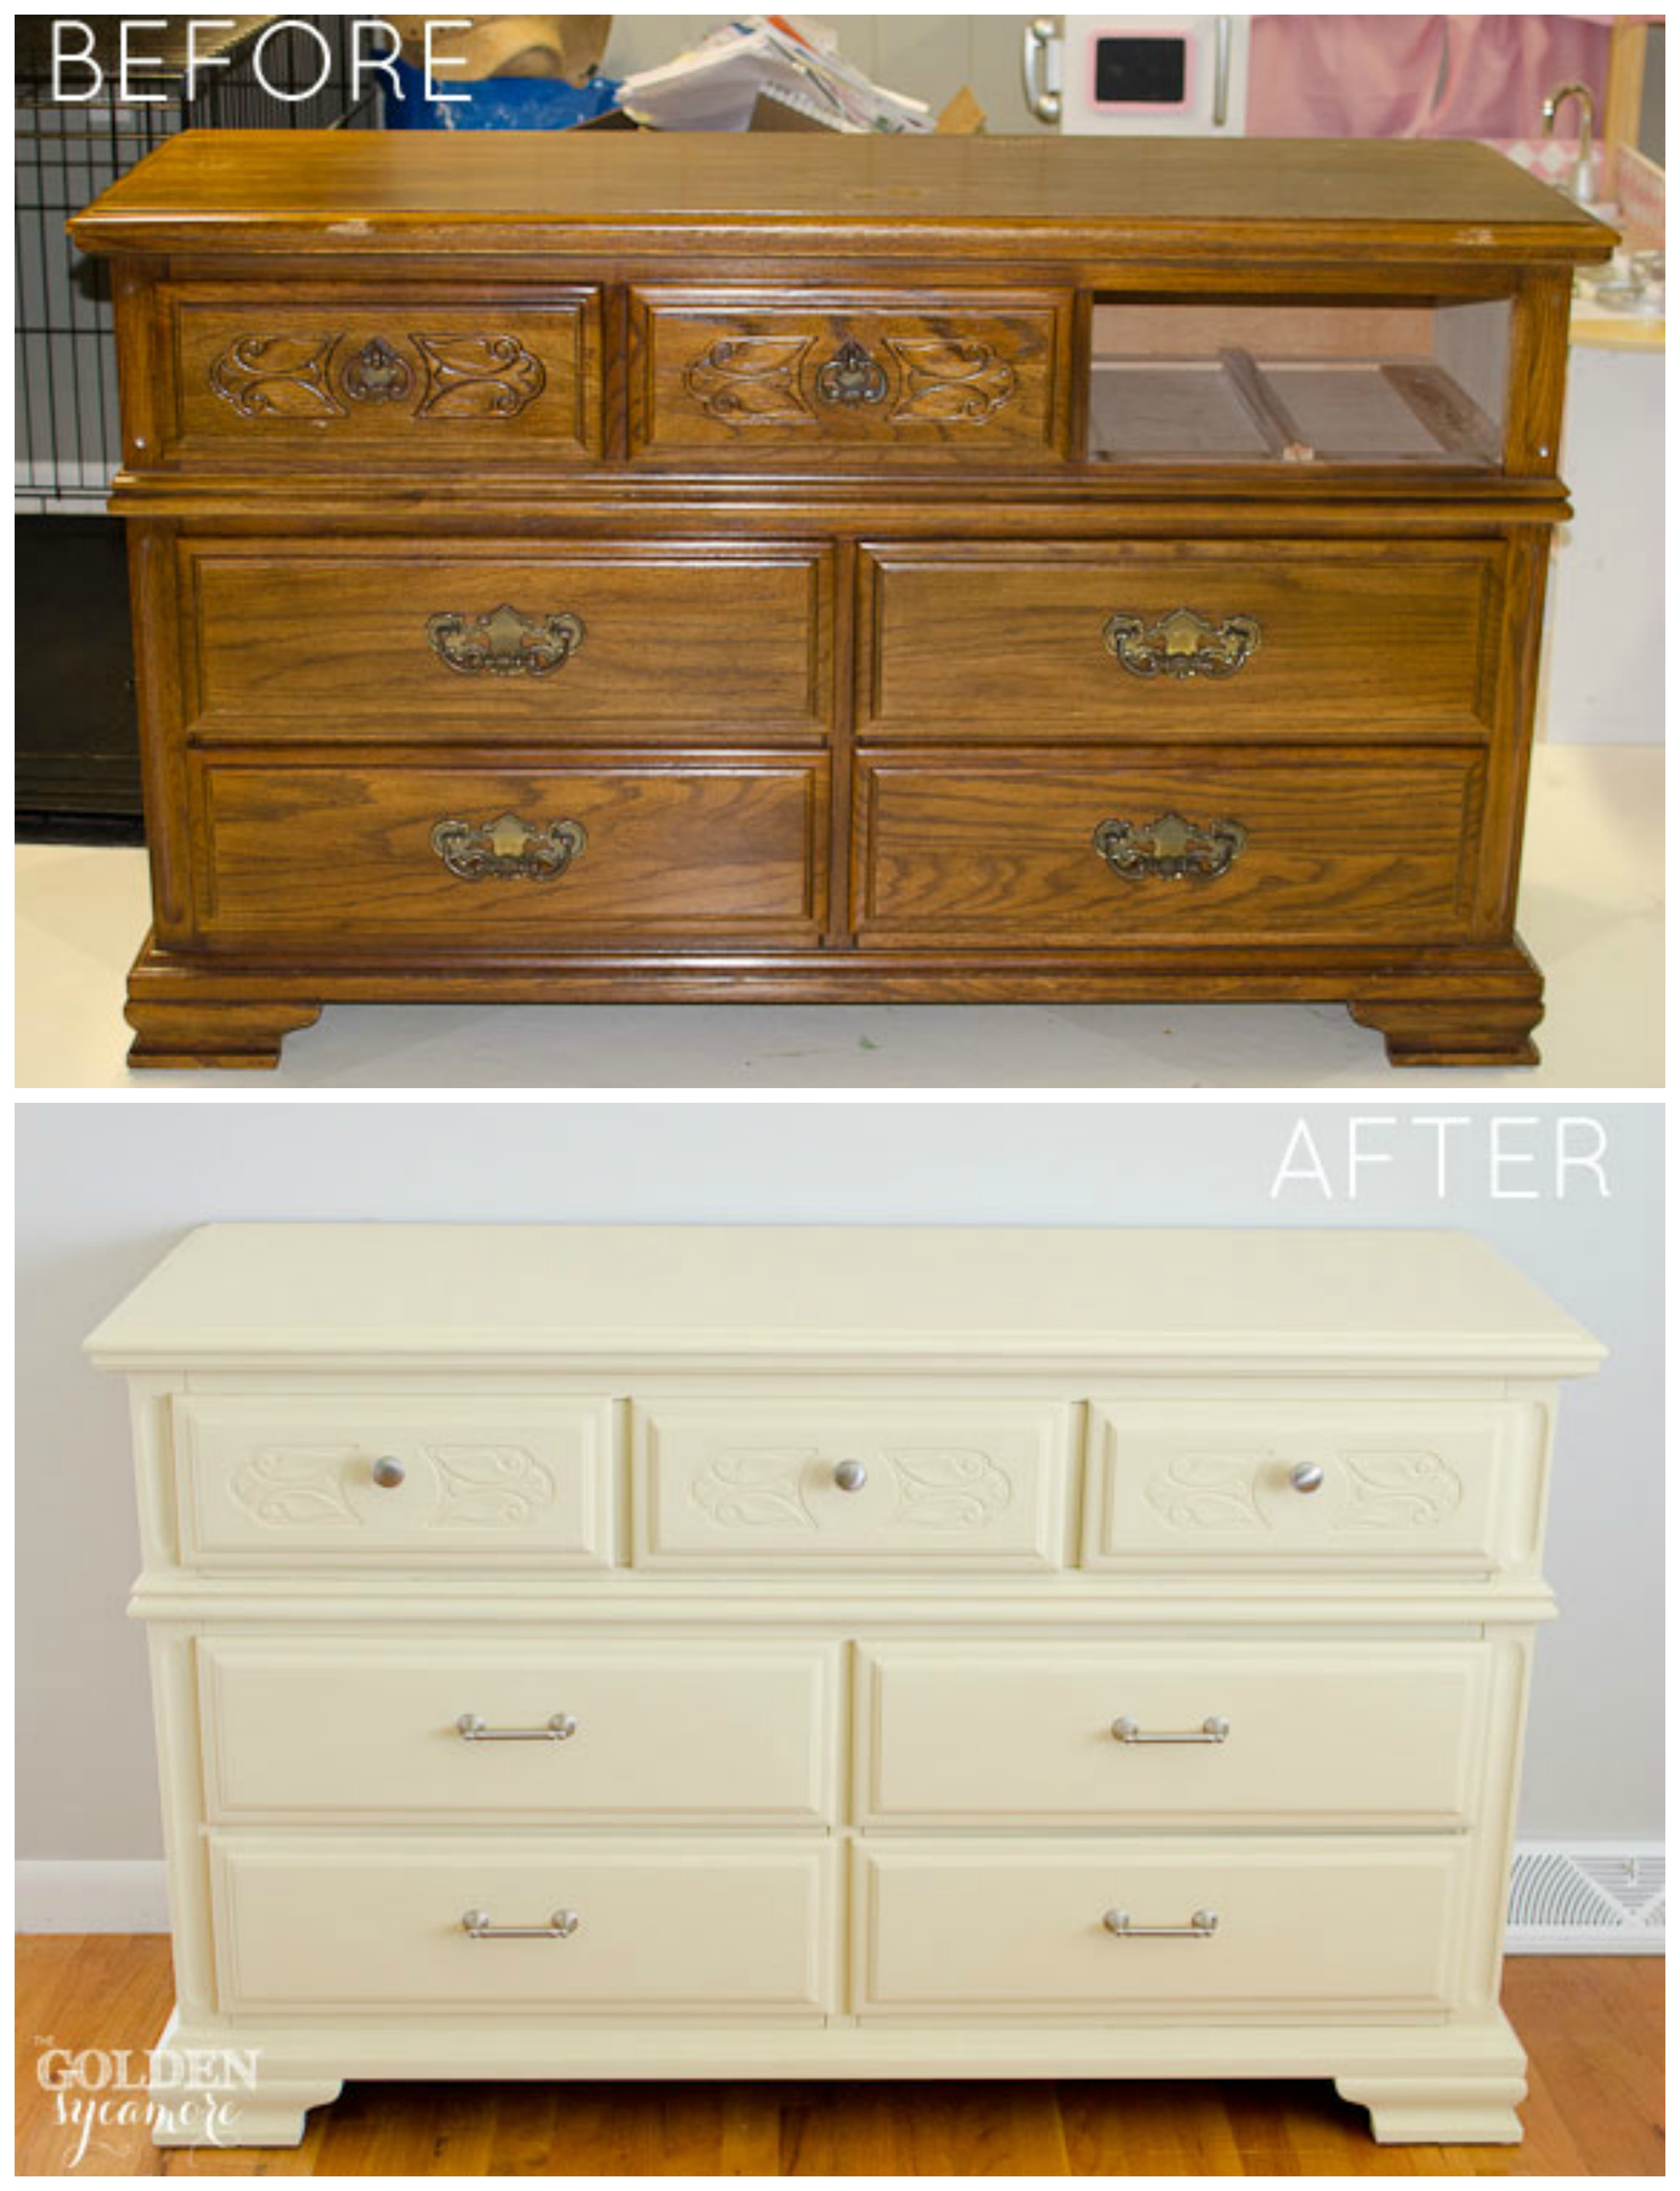 Paint Furniture How To Give Old Furniture A Modern Look With Chalk Paint®  The